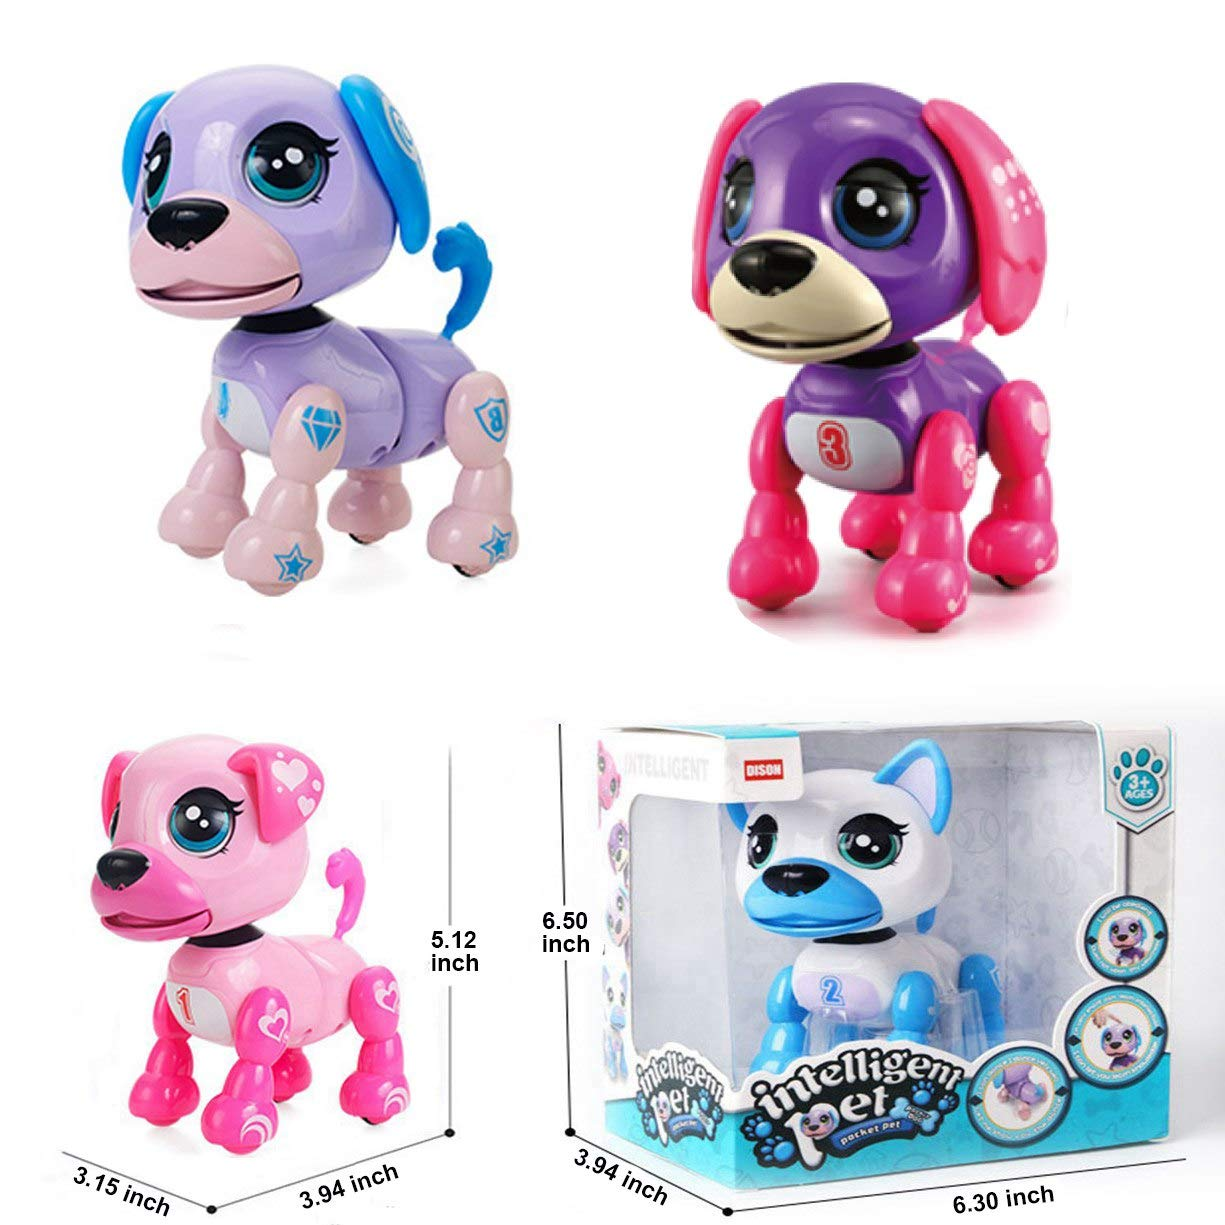 amdohai Interactive Puppy - Smart Pet, Electronic Robot Dog Toys for Age 3 4 5 6 7 8 Year Old Girls, Gifts Idea for Kids ● Voice Control&Intelligent Talking (Pink) by amdohai (Image #6)